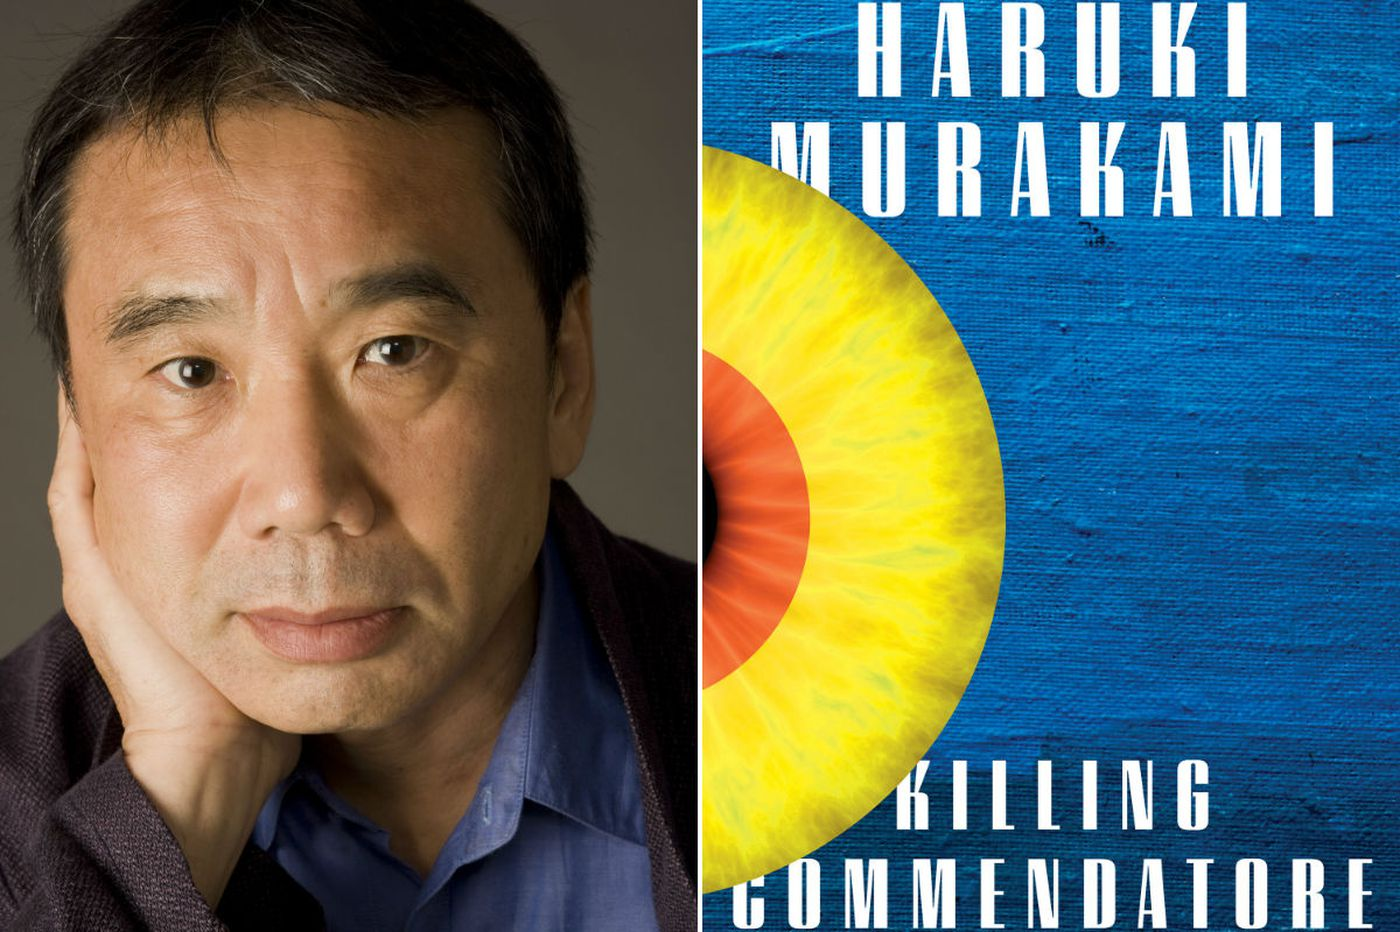 Murakami's 'Killing Commendatore' gets the balance between magic and realism right